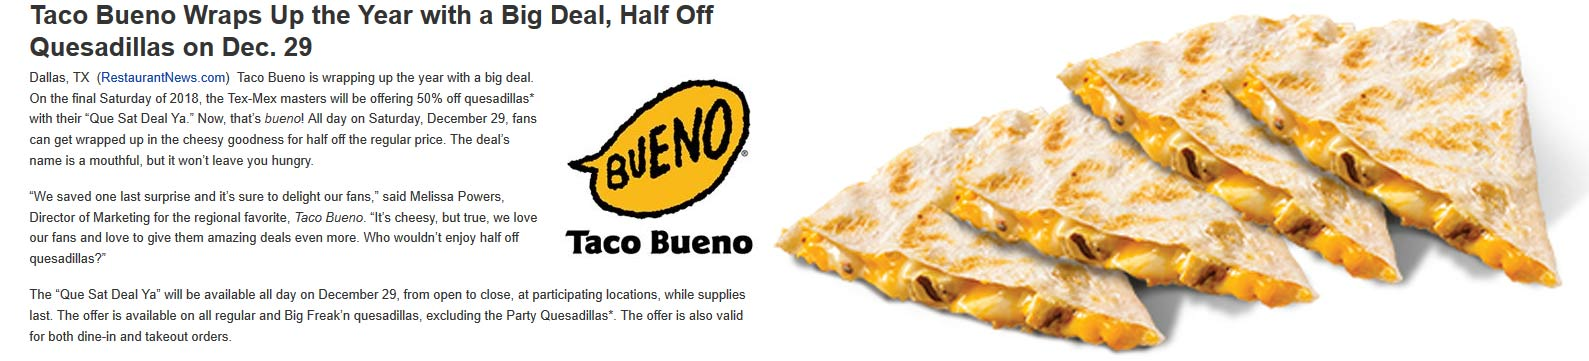 Taco Bueno coupons & promo code for [April 2020]